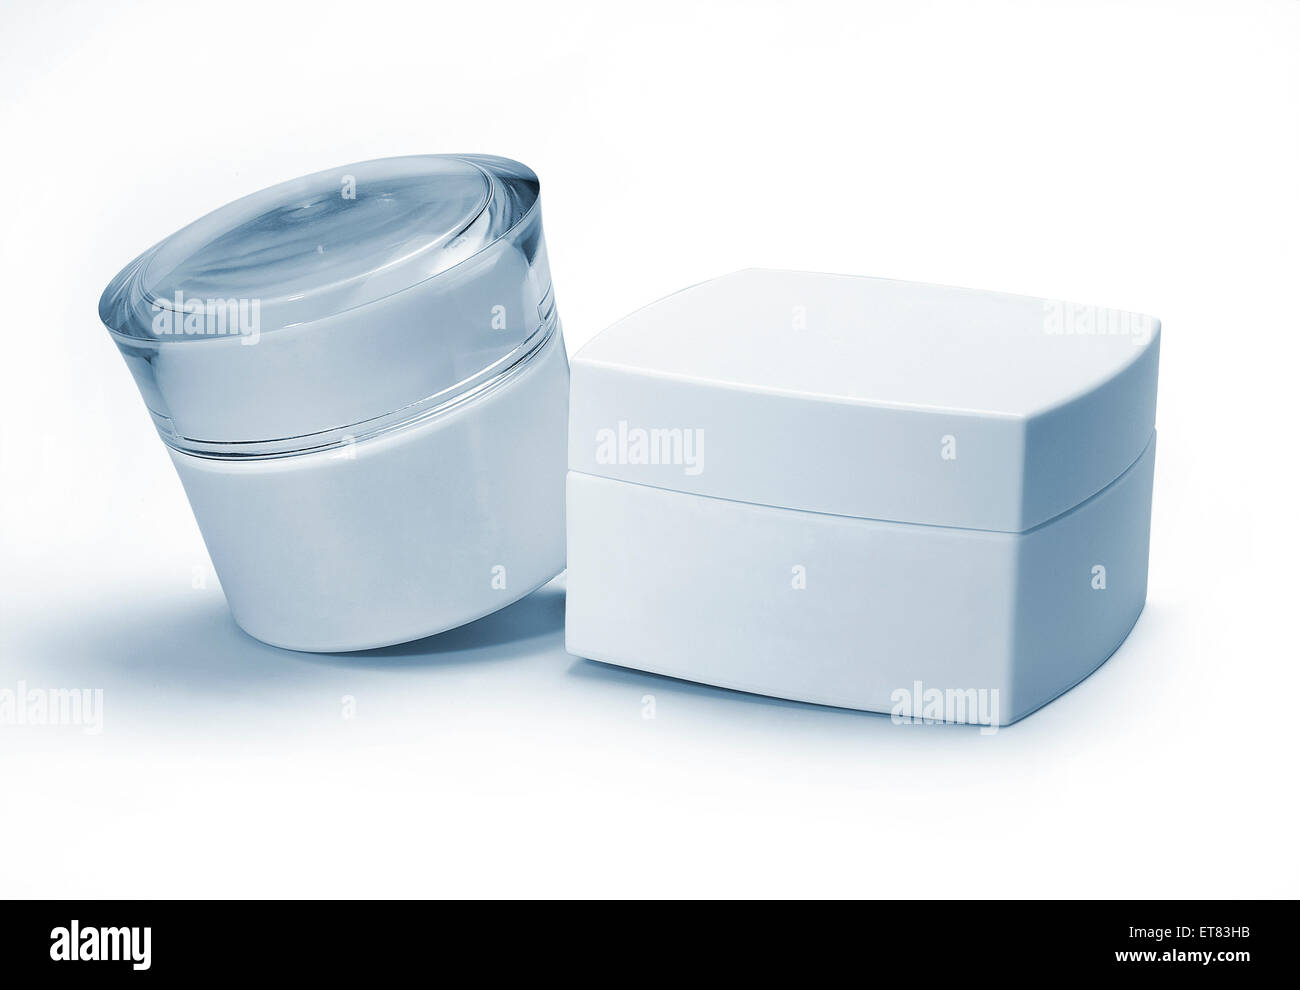 Two cosmetics containers. Blue tone. - Stock Image